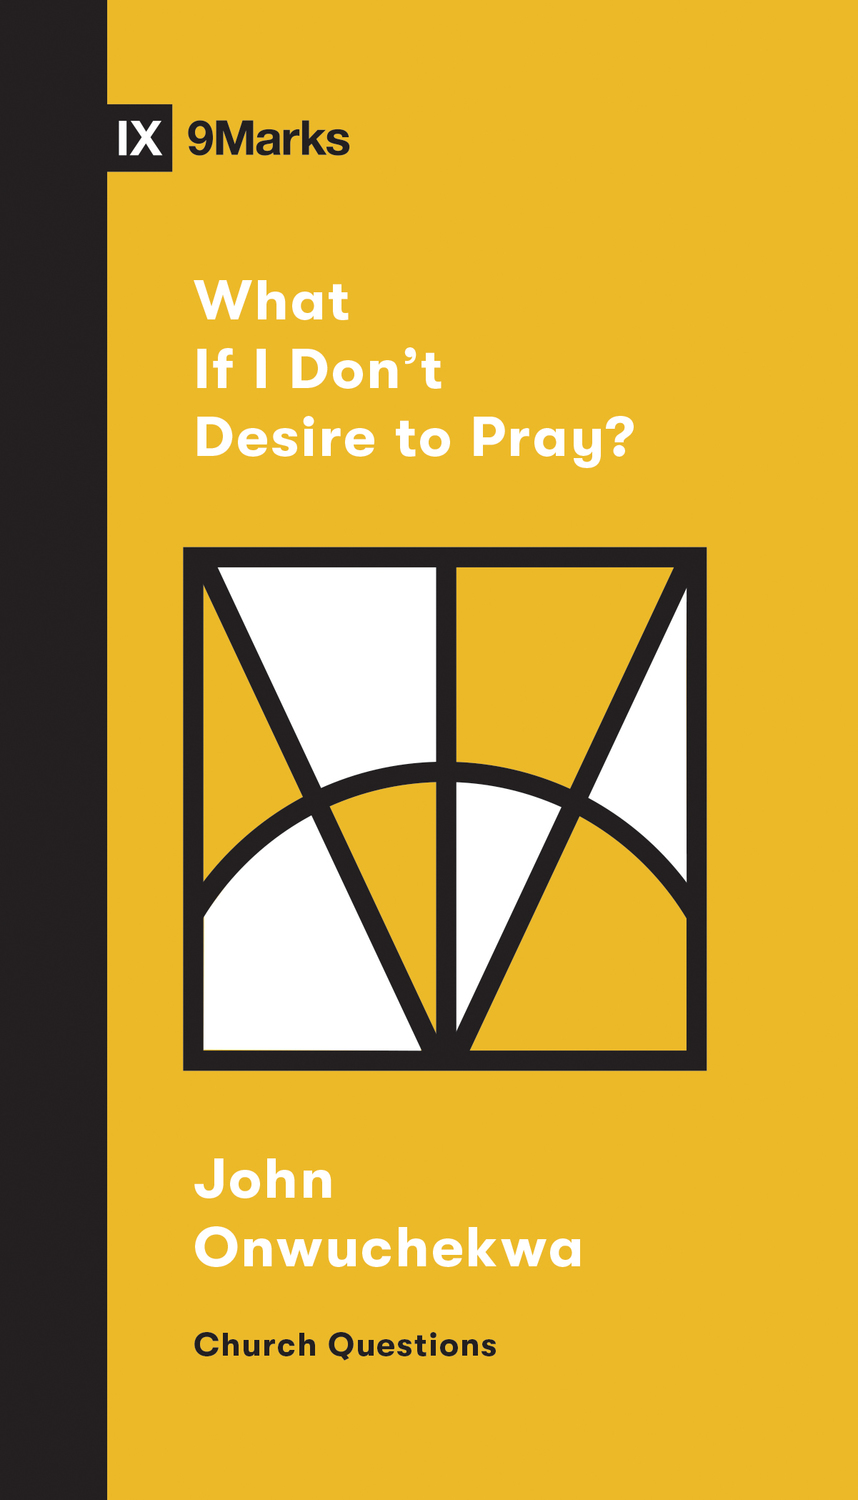 What If I Don't Desire to Pray?